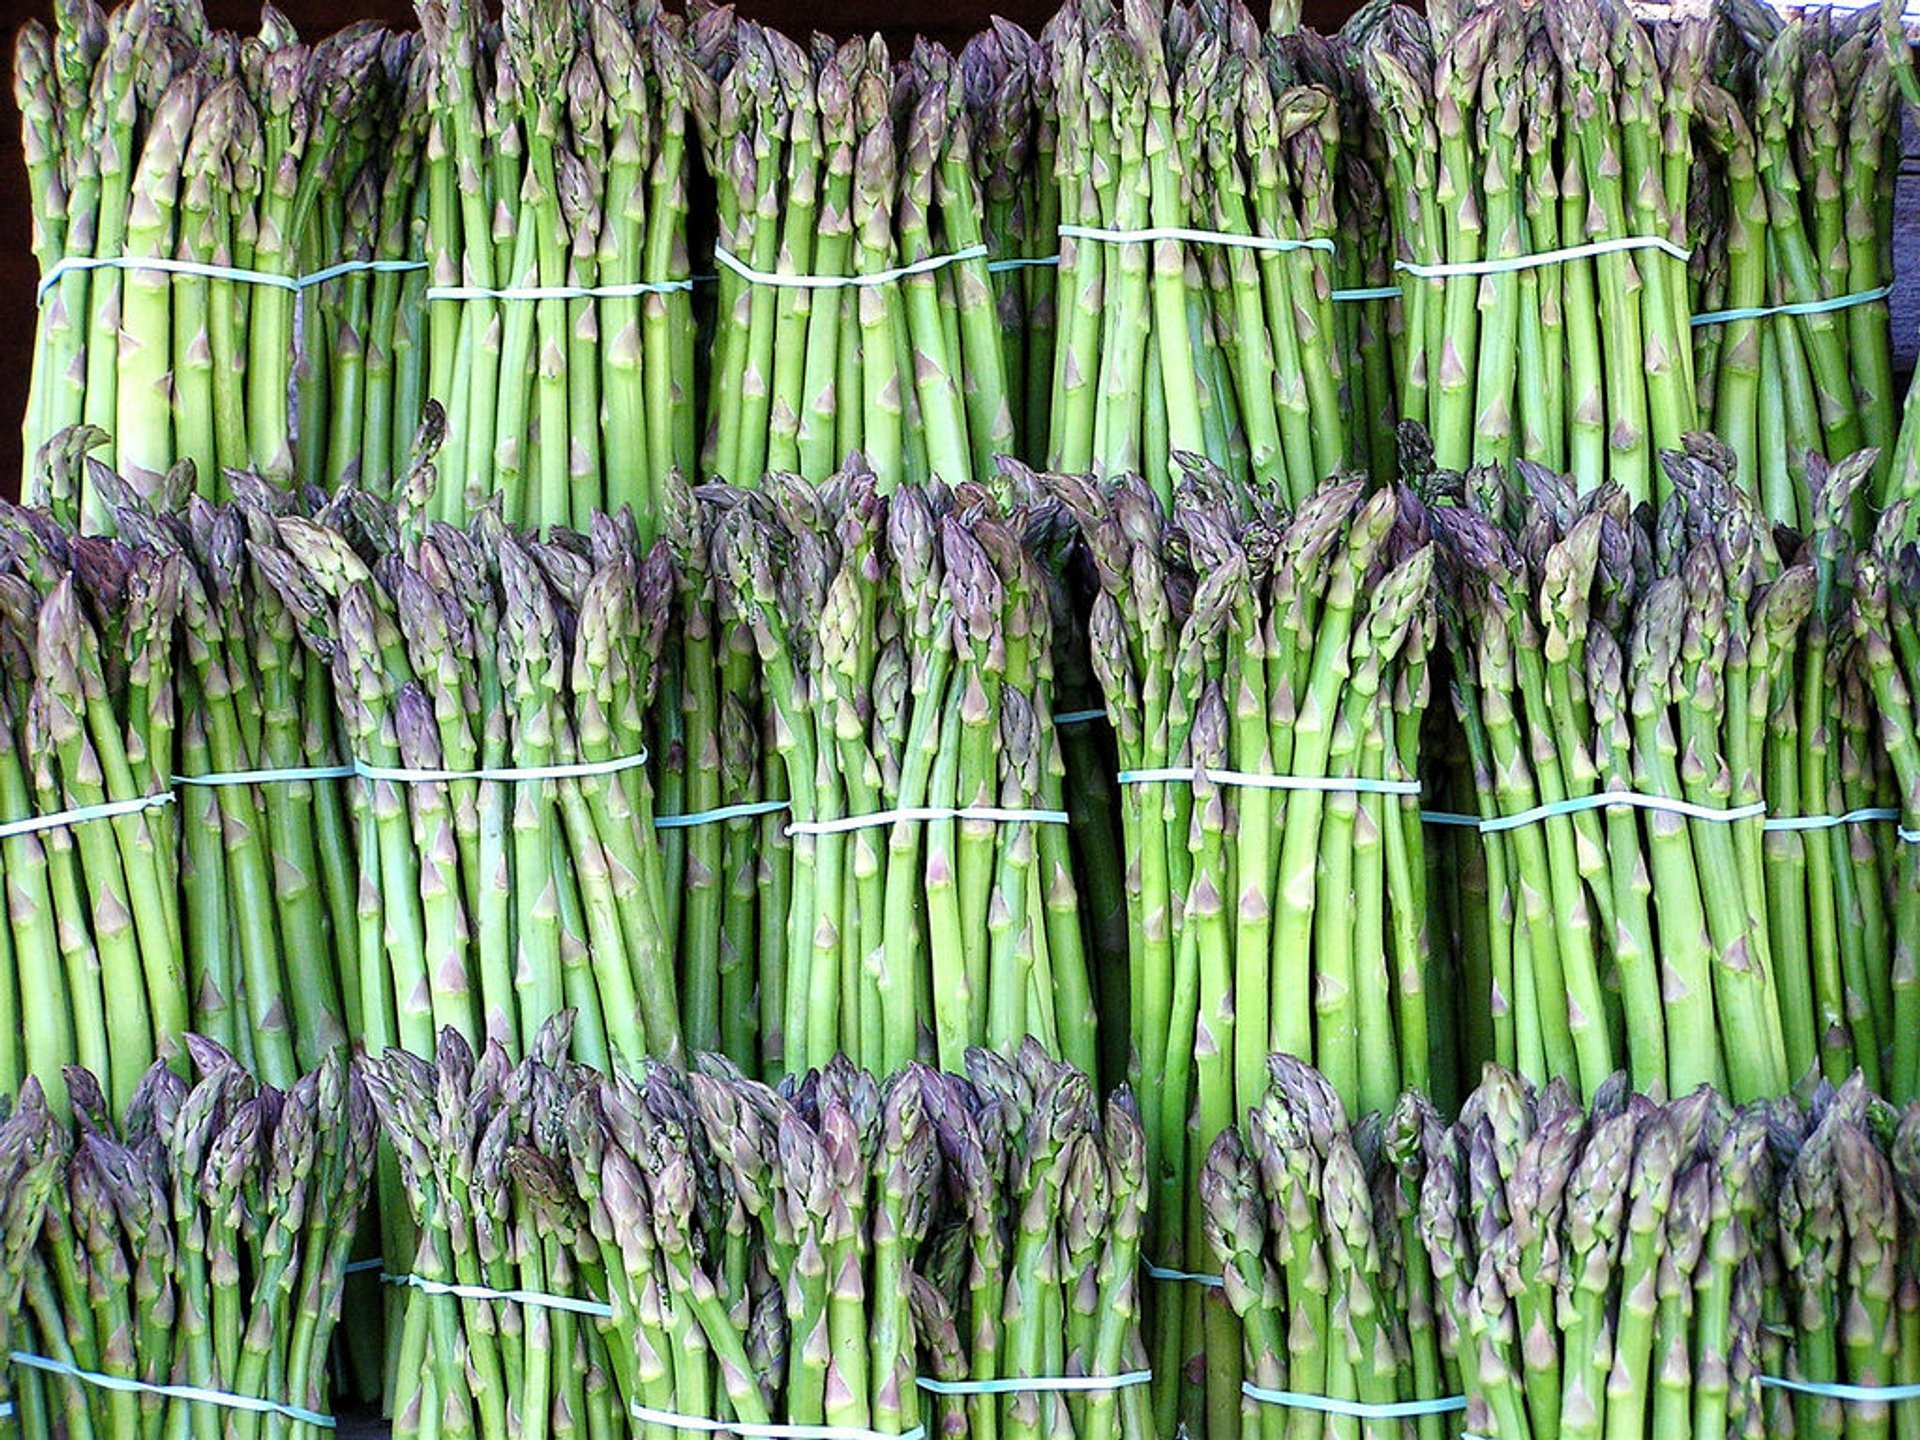 Asparagus Season in England 2020 - Best Time